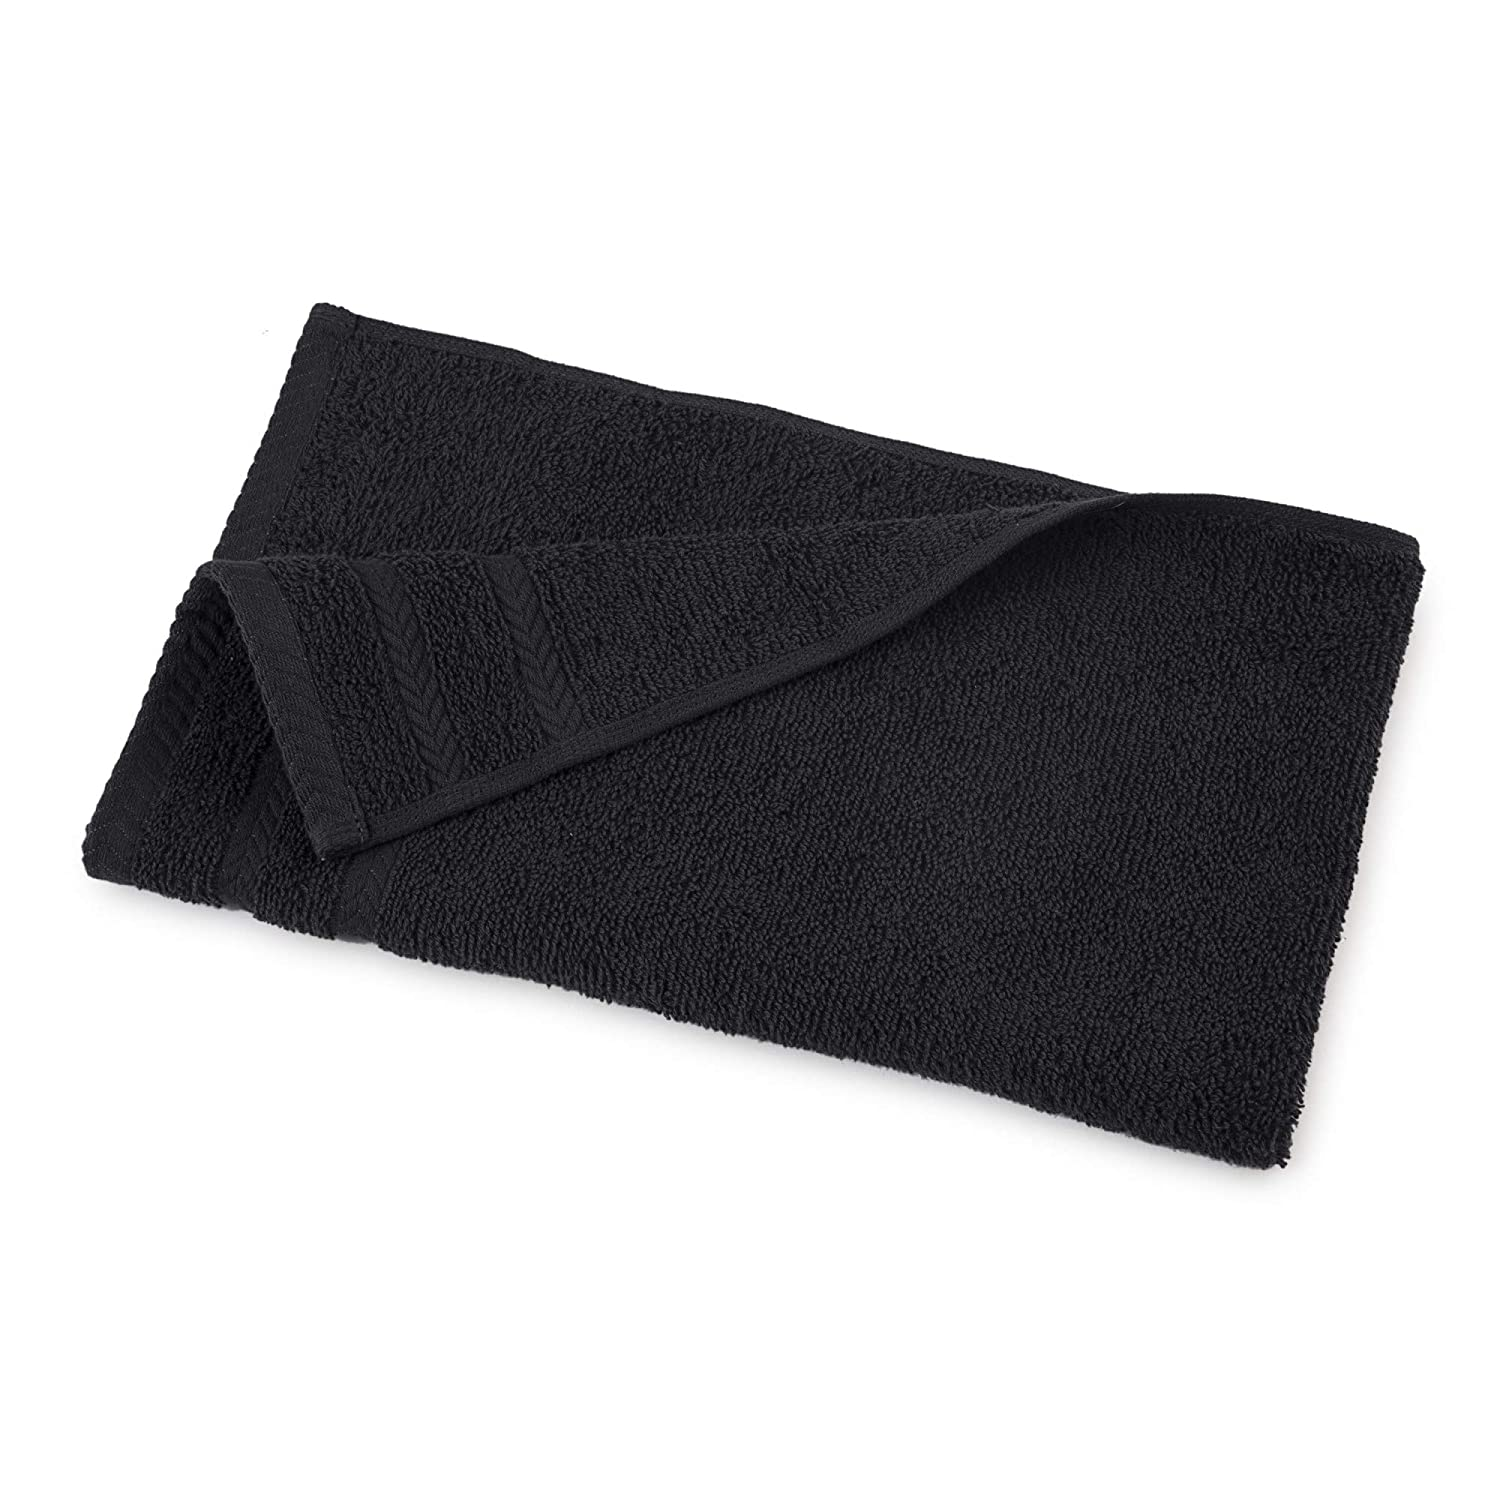 Jet Black Martex Egyptian Cotton with Dryfast Hand Towel